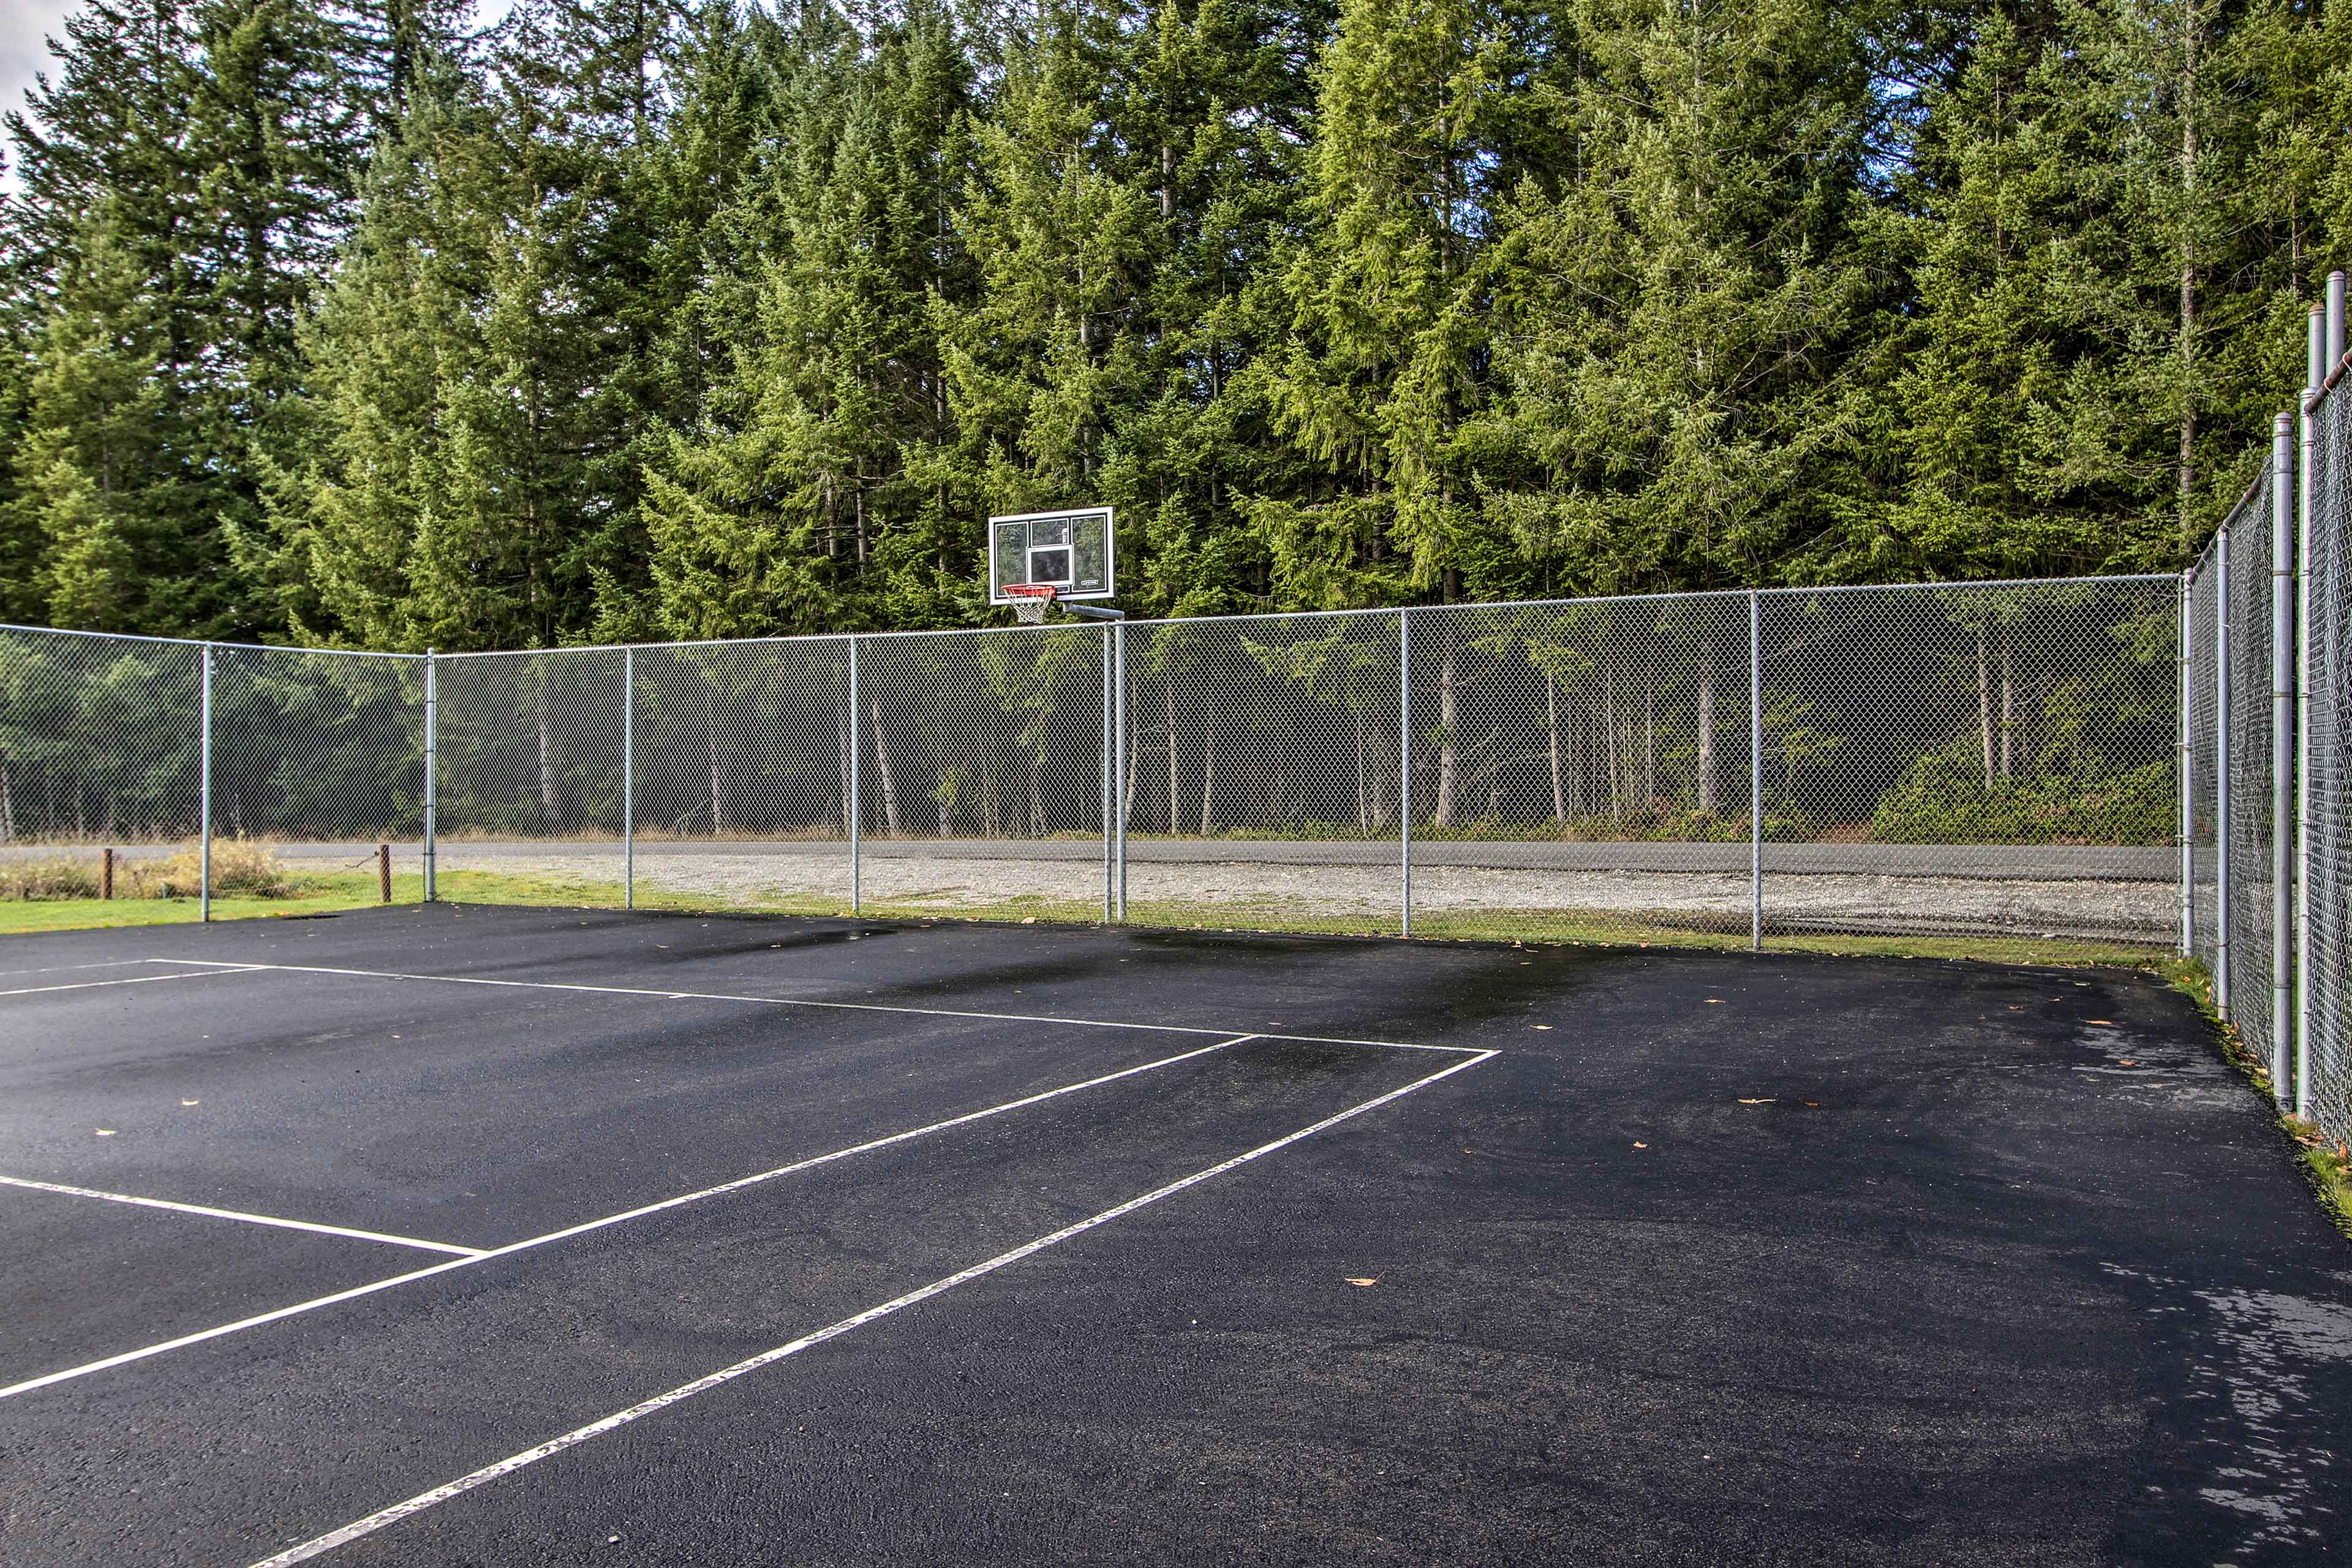 Check out the community tennis and basketball courts!